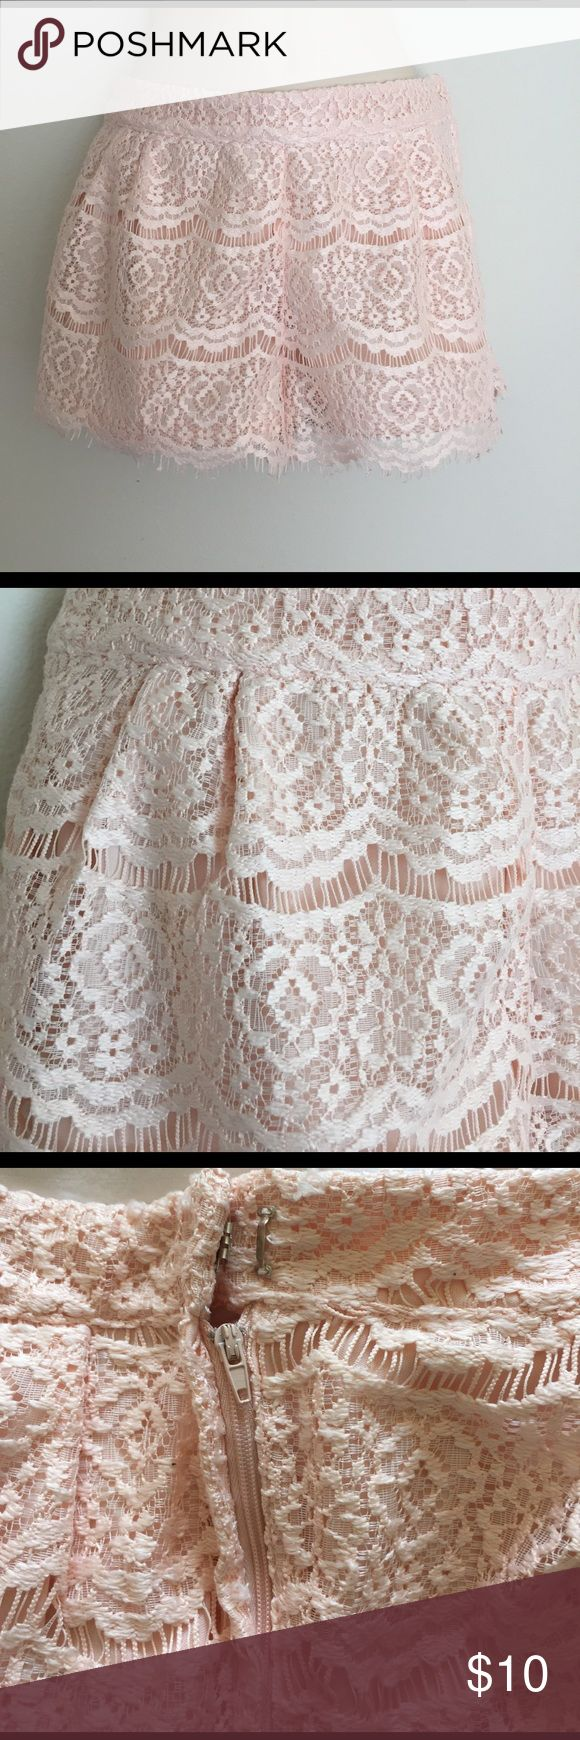 Pink lace shorts by forever 21 Peachy pink lace shorts. Perfect for summer. Hidden zipper and hook closure on the side. Size medium. Forever 21 Shorts